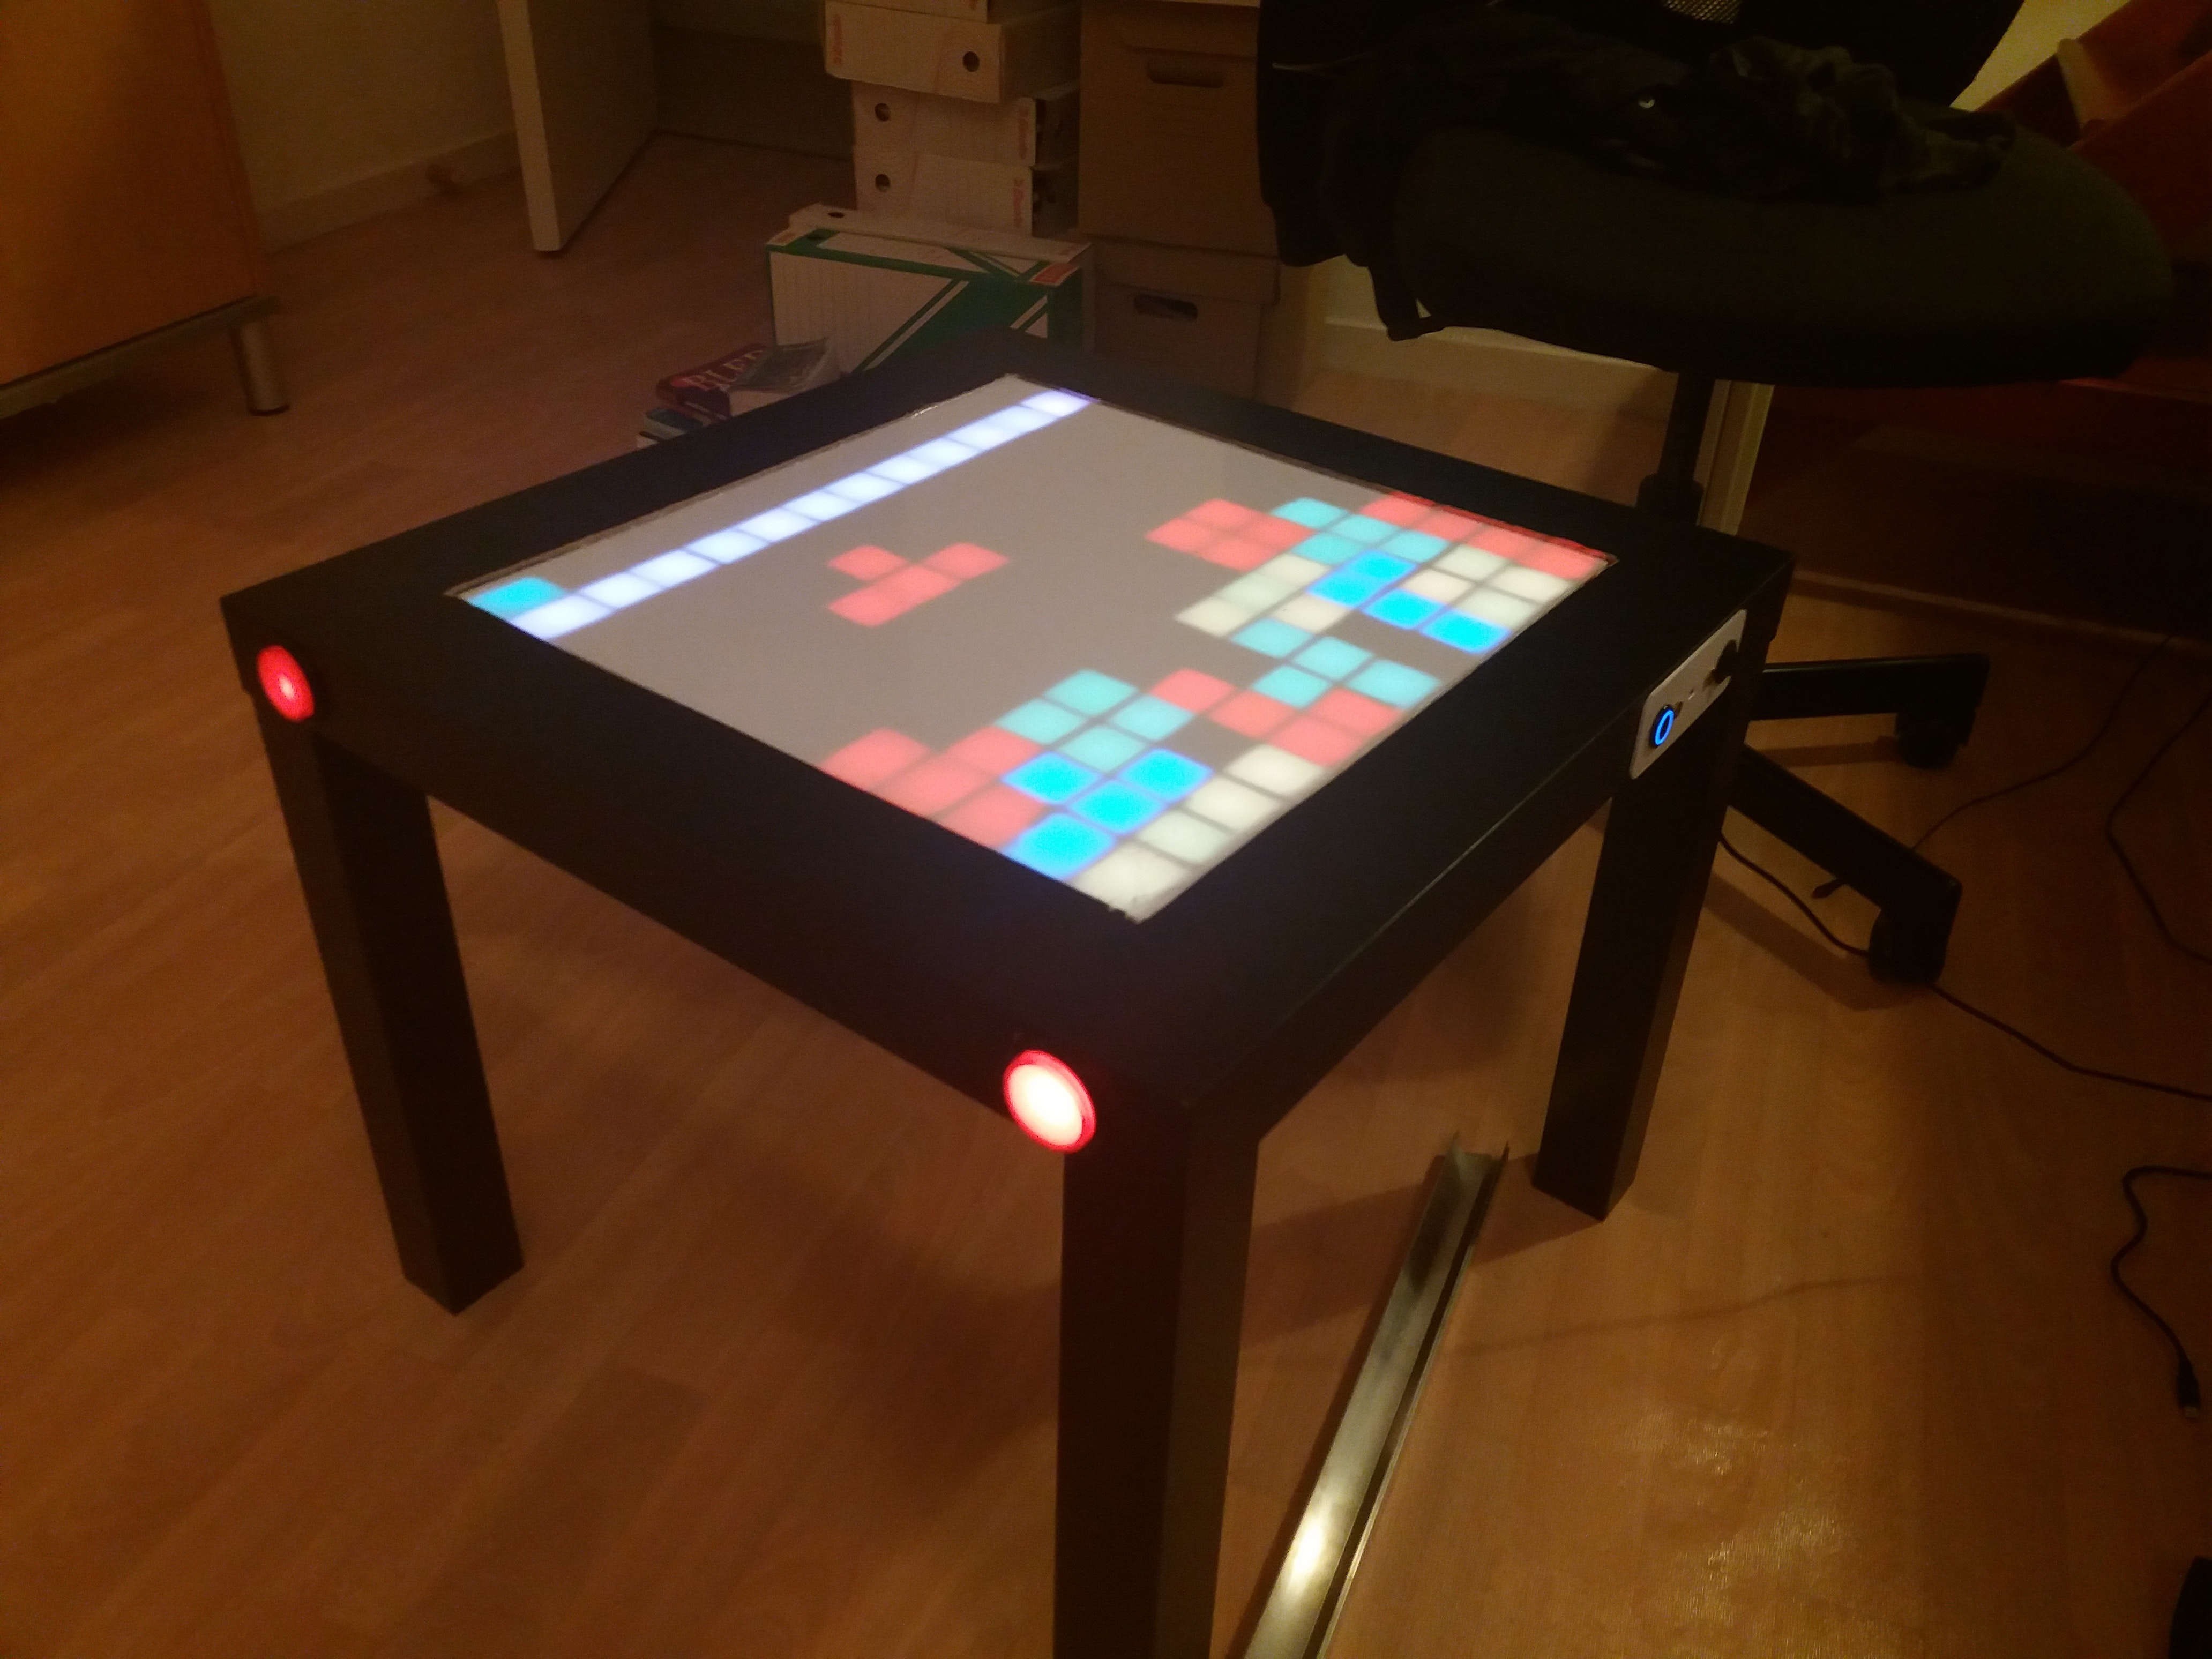 interactive led table for 50\u20ac arduino project hub